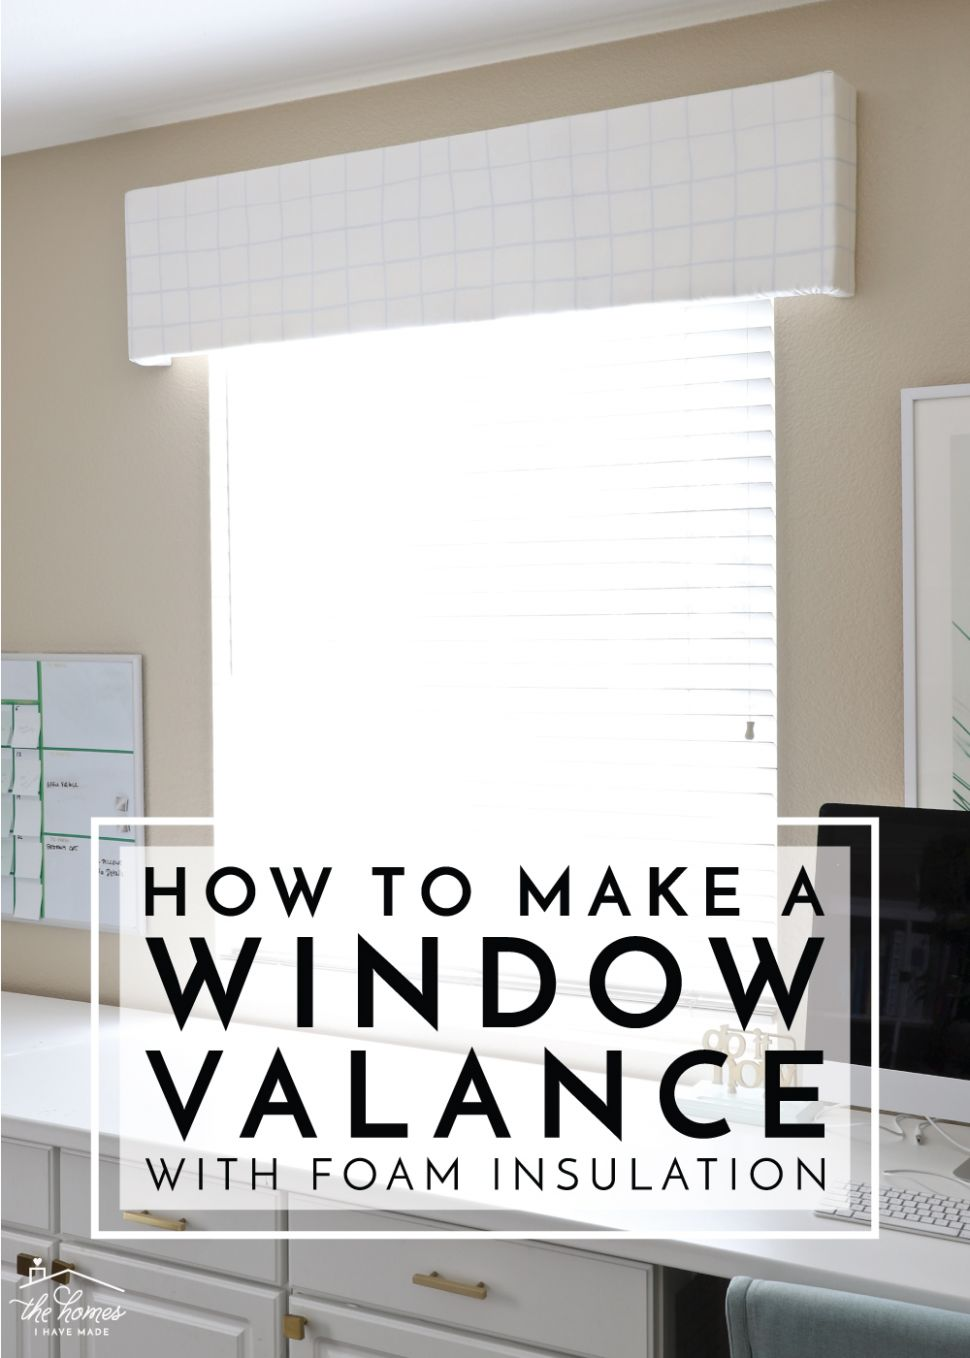 How to Make a Window Valance with Foam Insulation | The Homes I ..